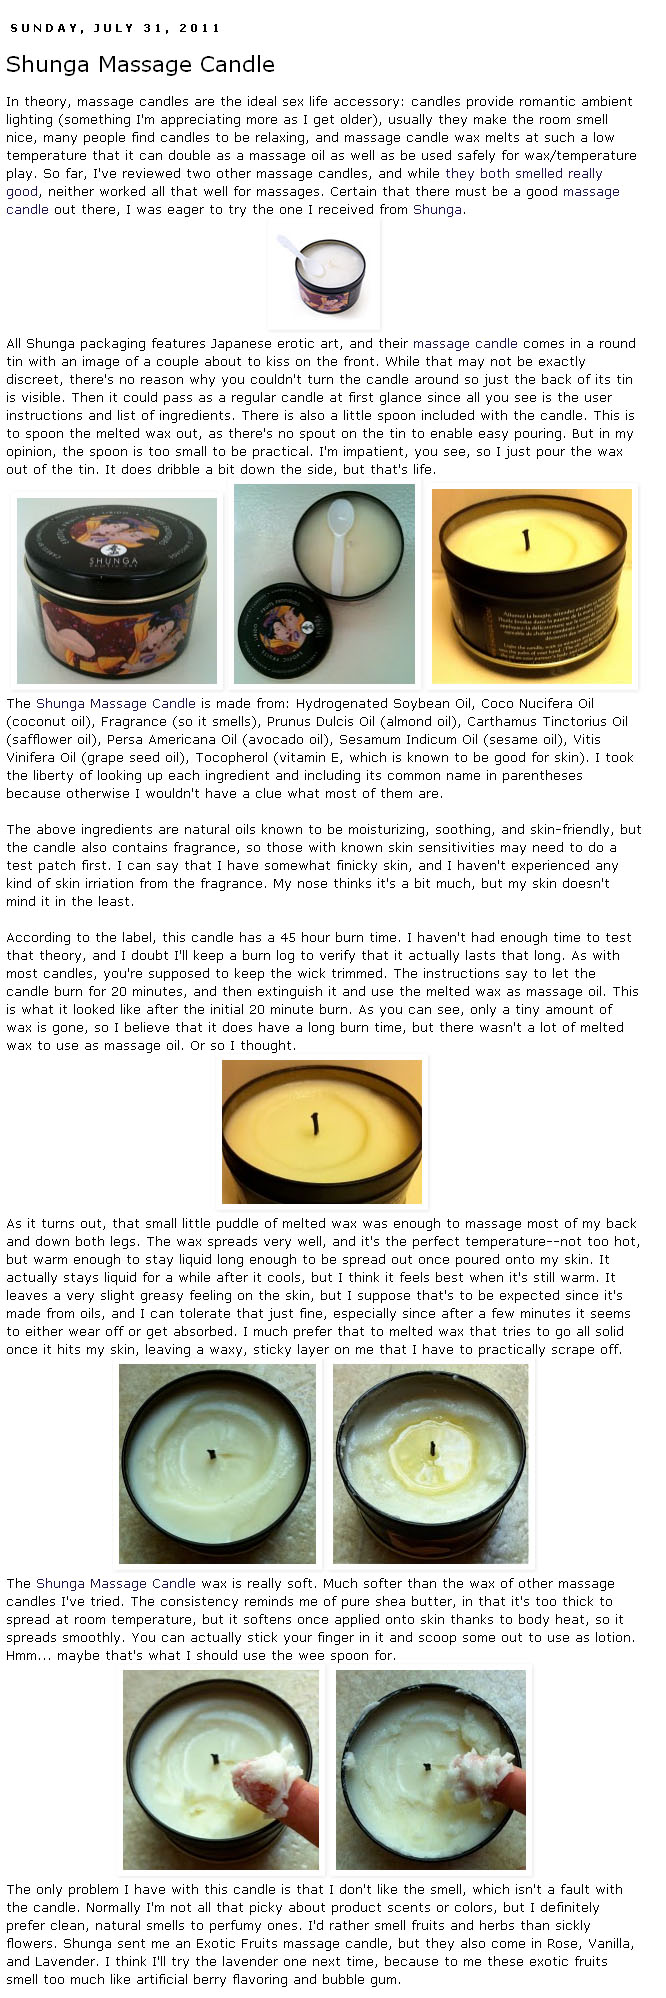 Shunga Massage Candle Review